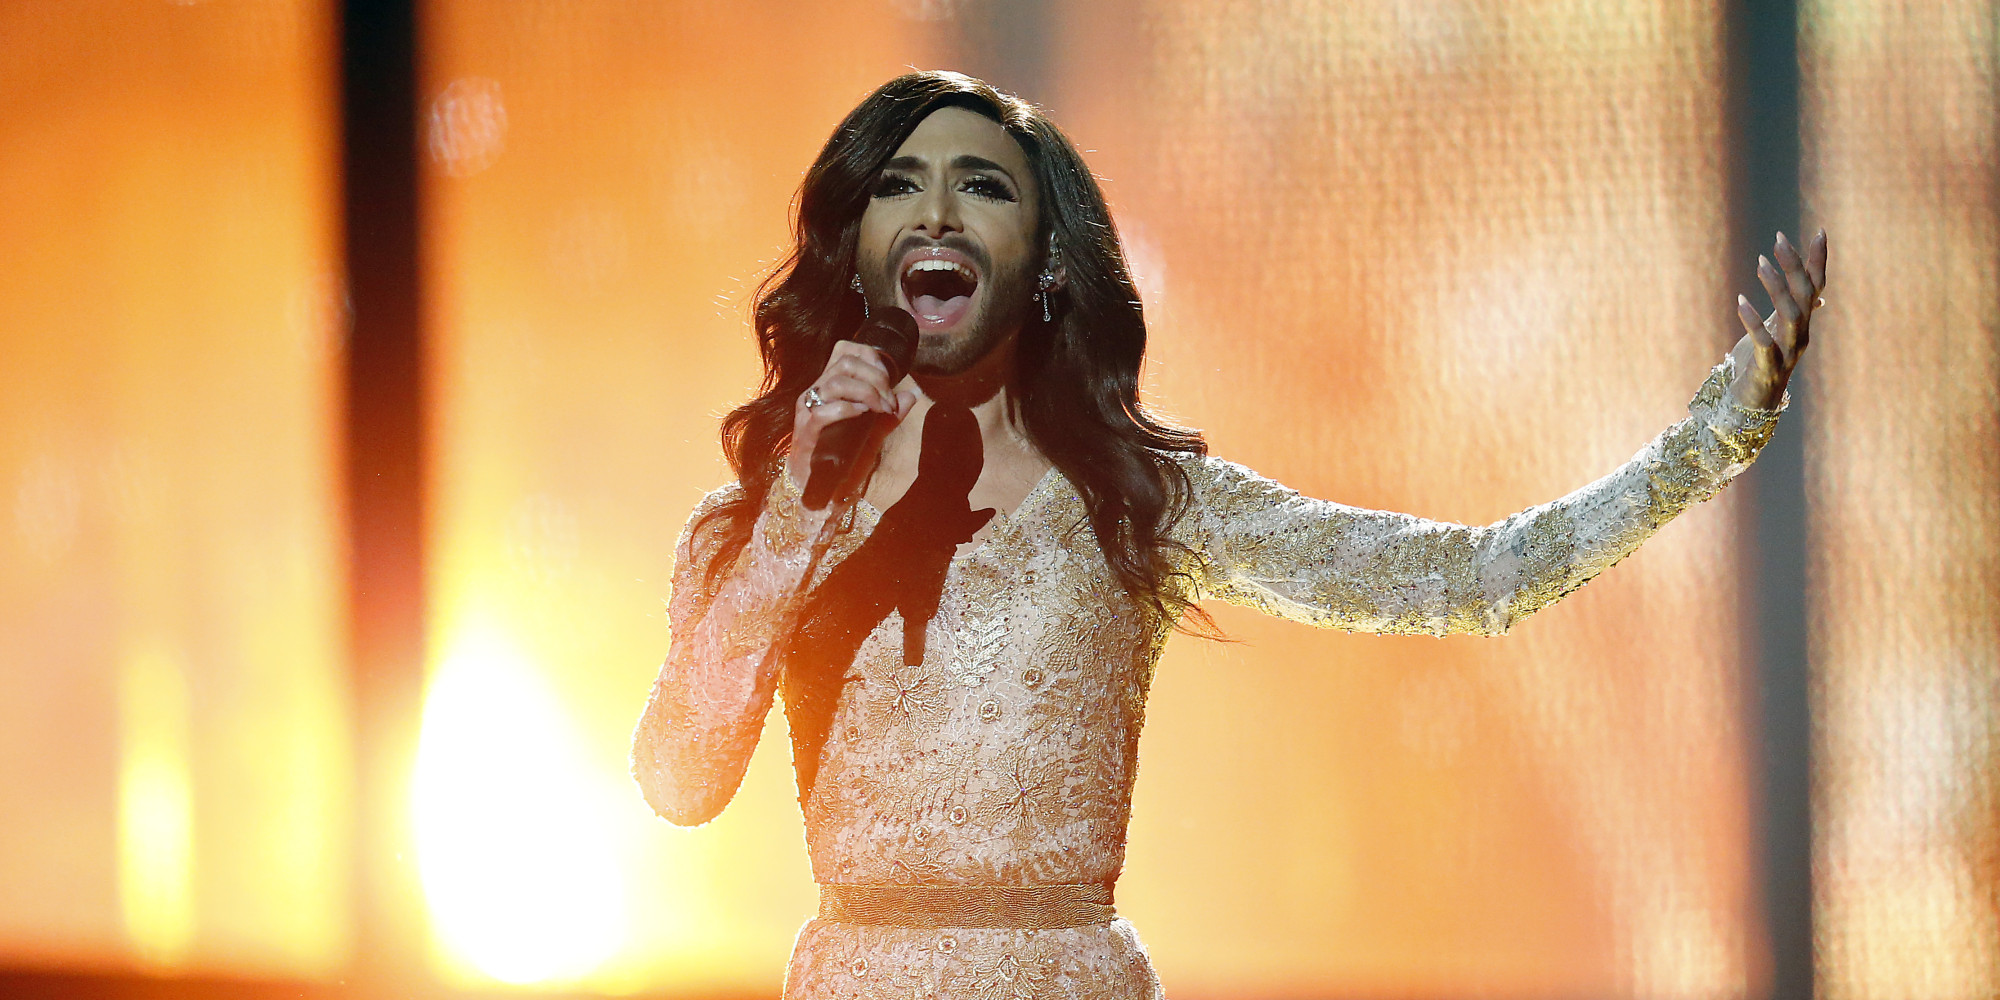 Eurovision Song Contest 2014 Winner Conchita Wurst Austria